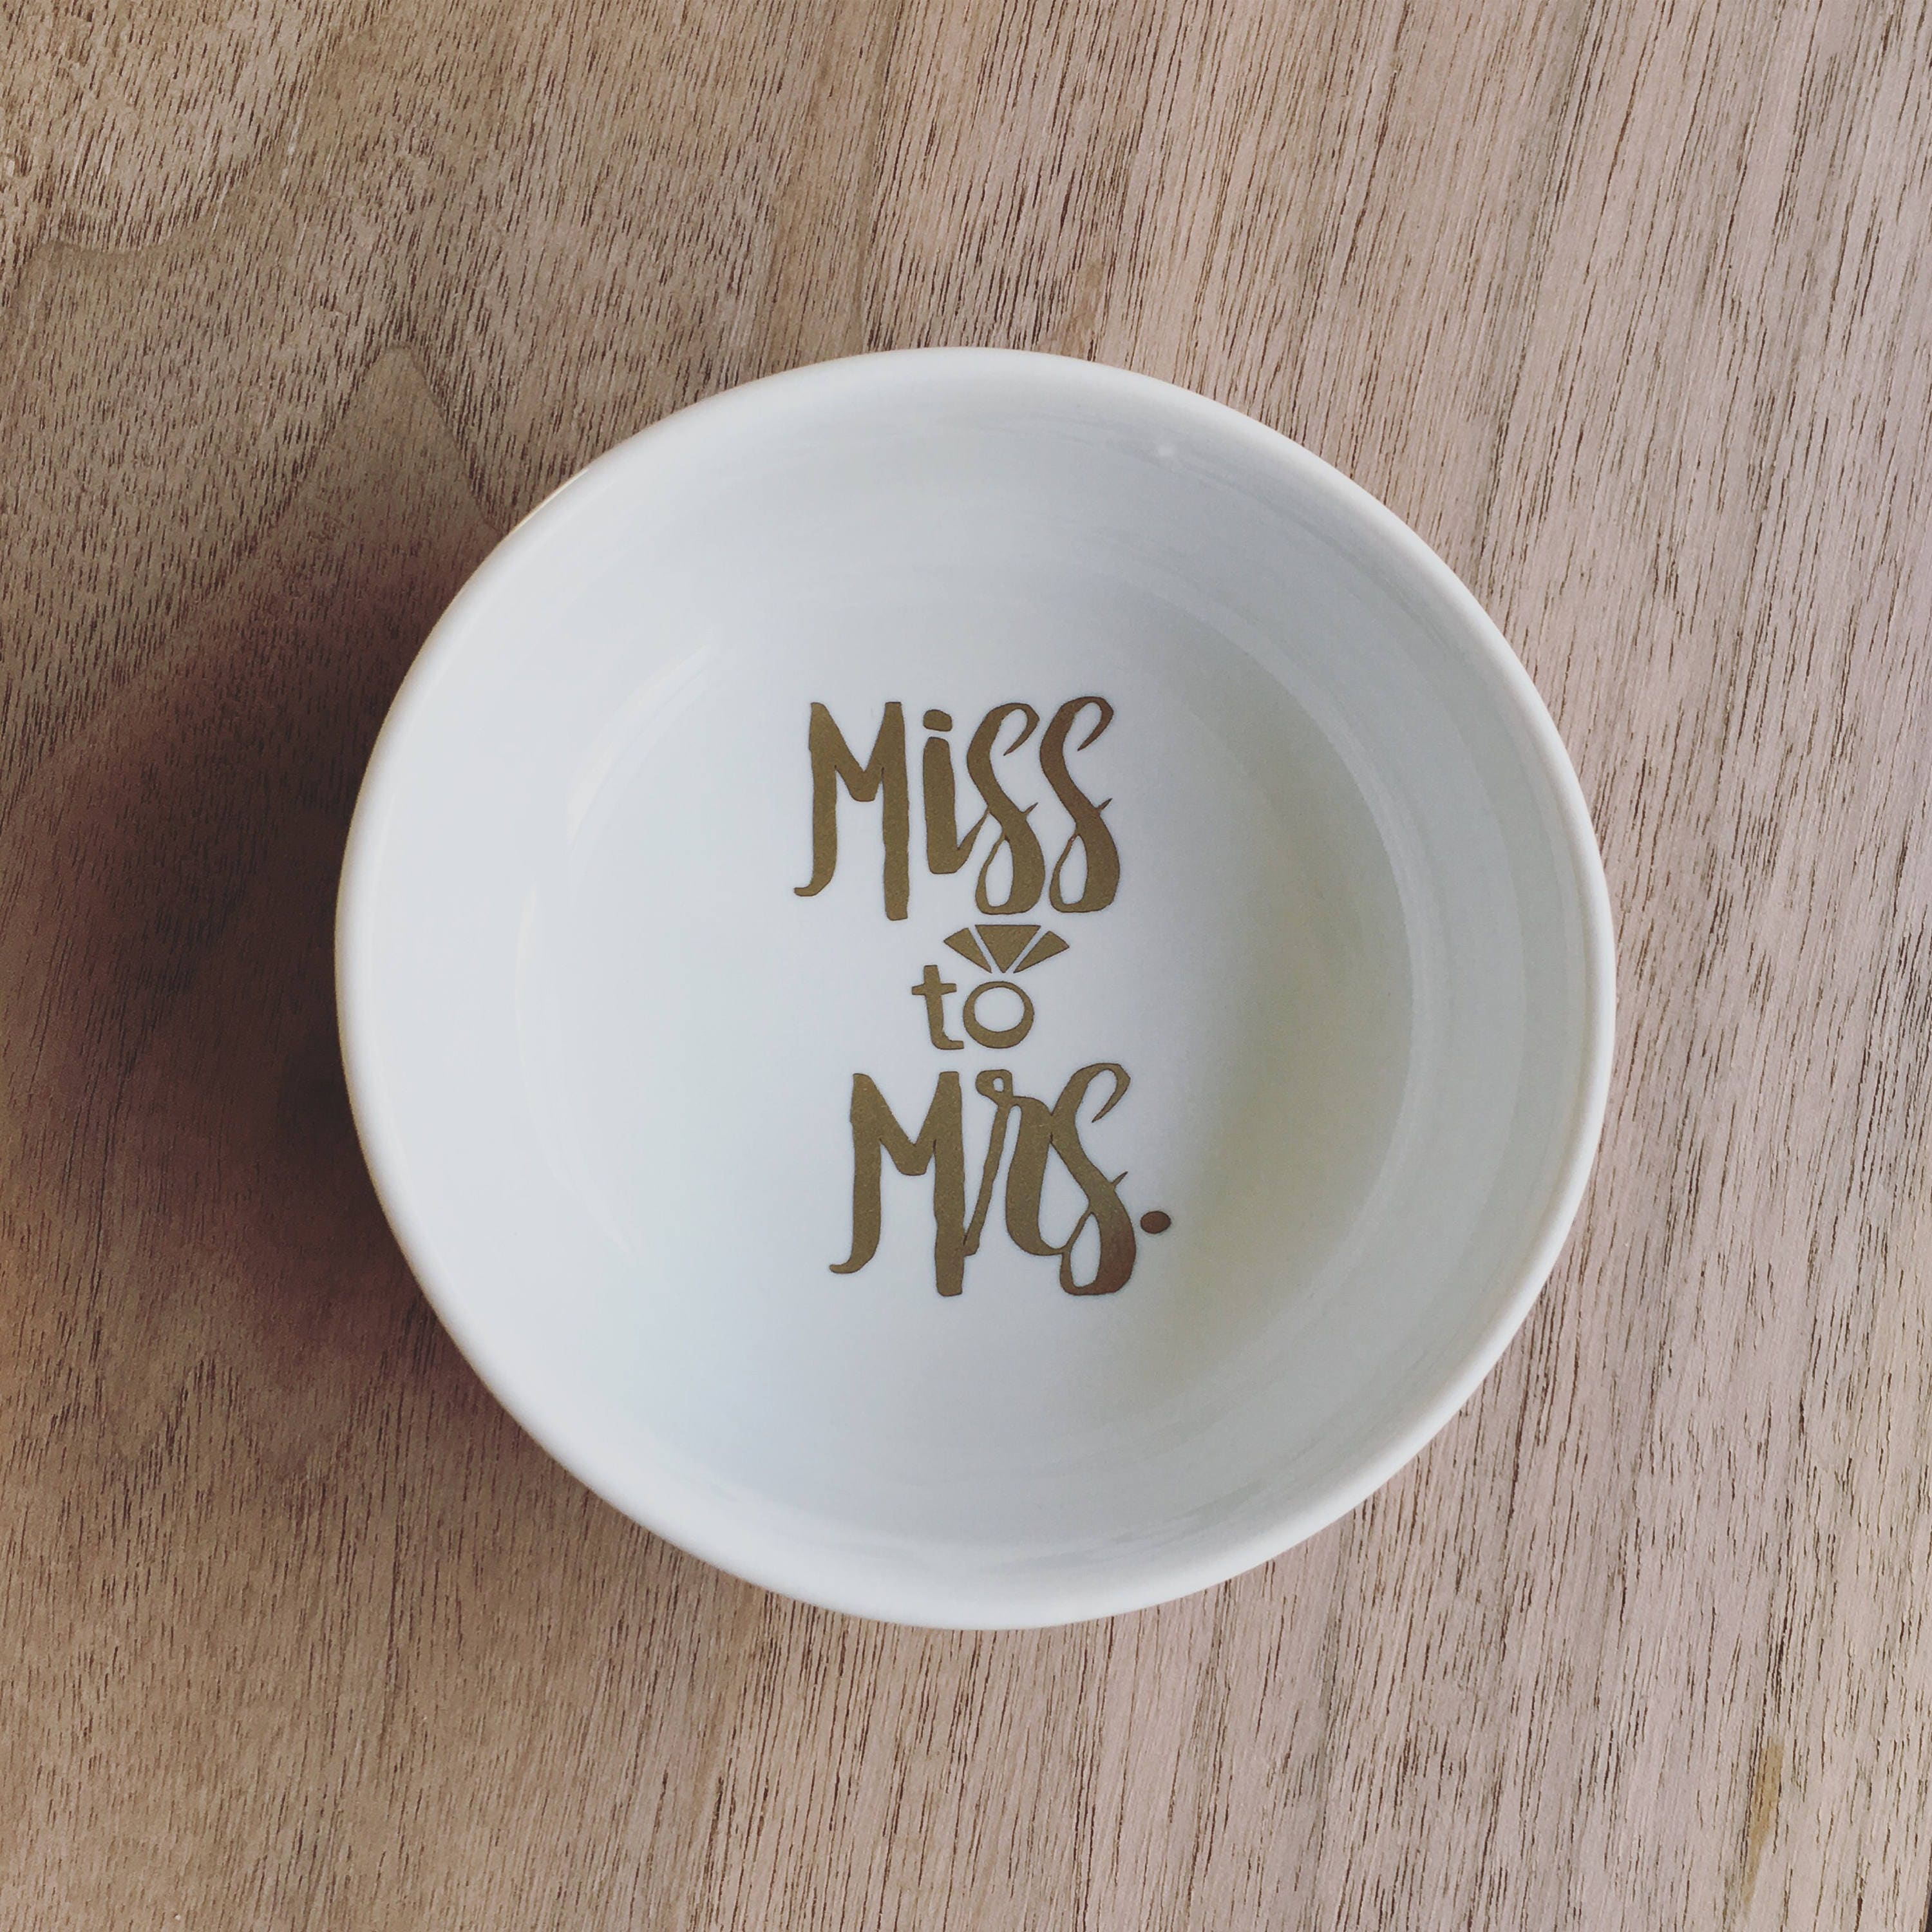 miss to mrs round ring dish white with gold for brides engagement wedding to store your engagement ring fiance feyonce - Wedding Ring Dish